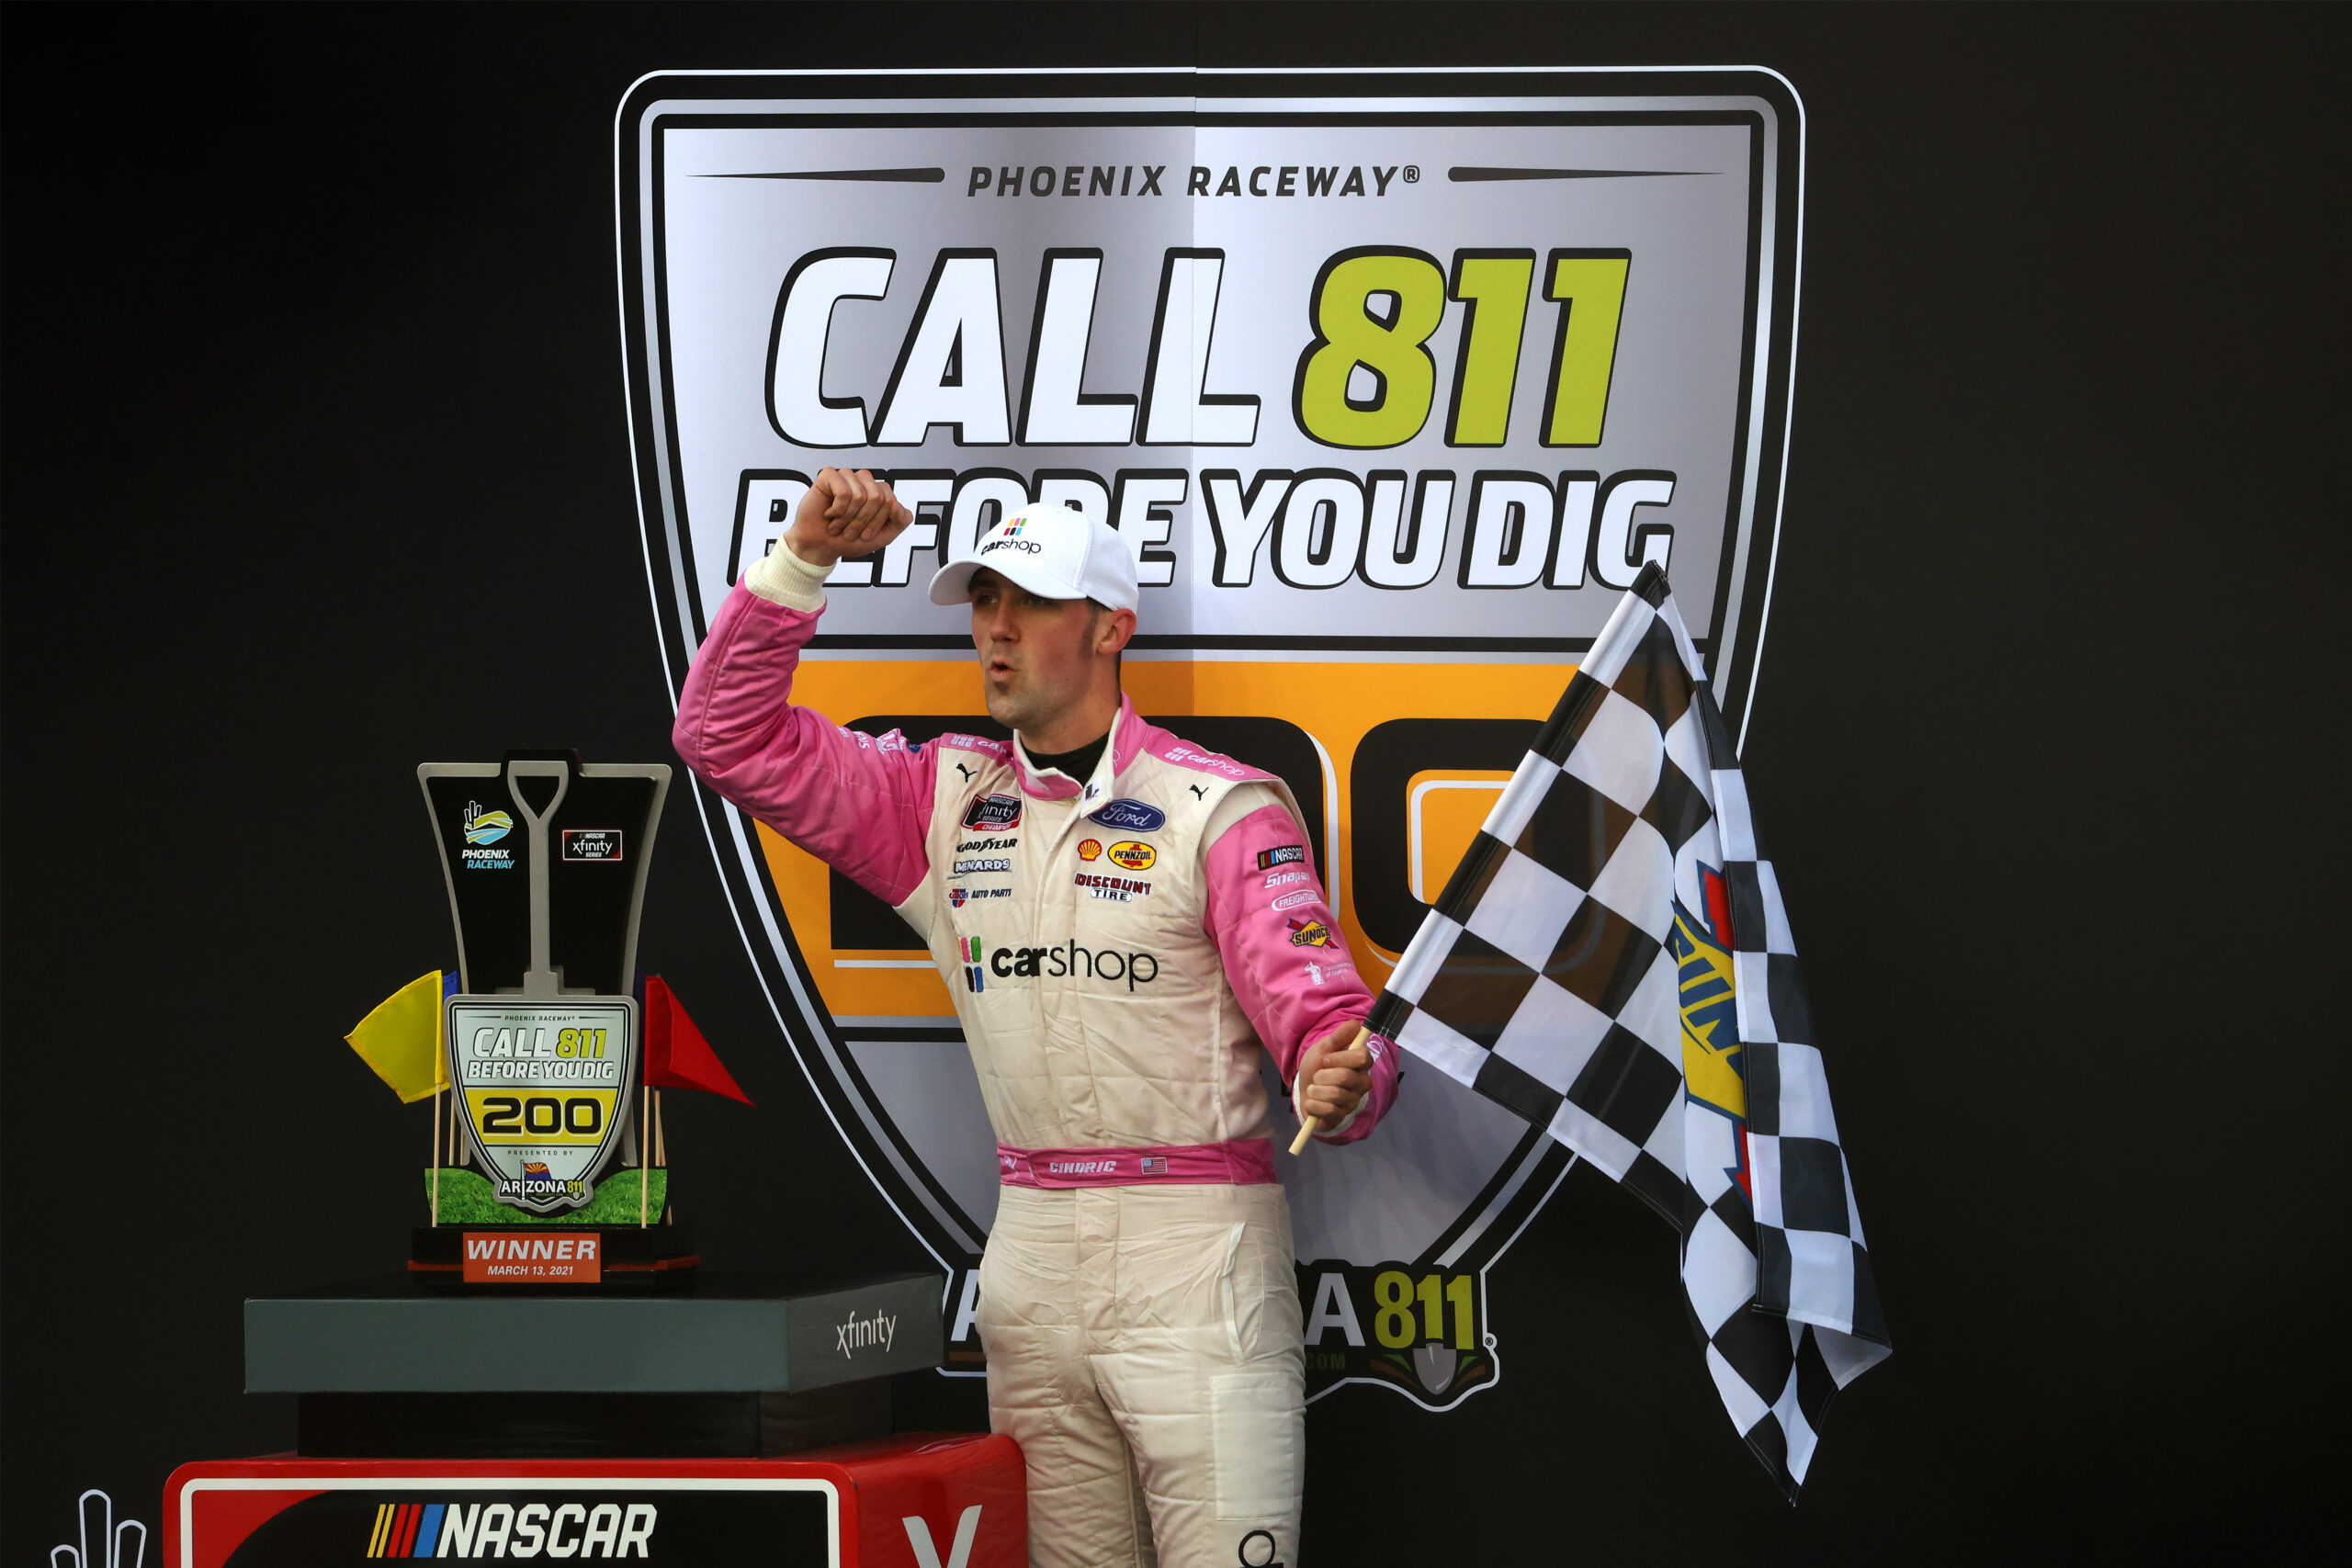 NASCAR Xfinity Series Call 811 Before You Dig 200 presented by Arizona 811